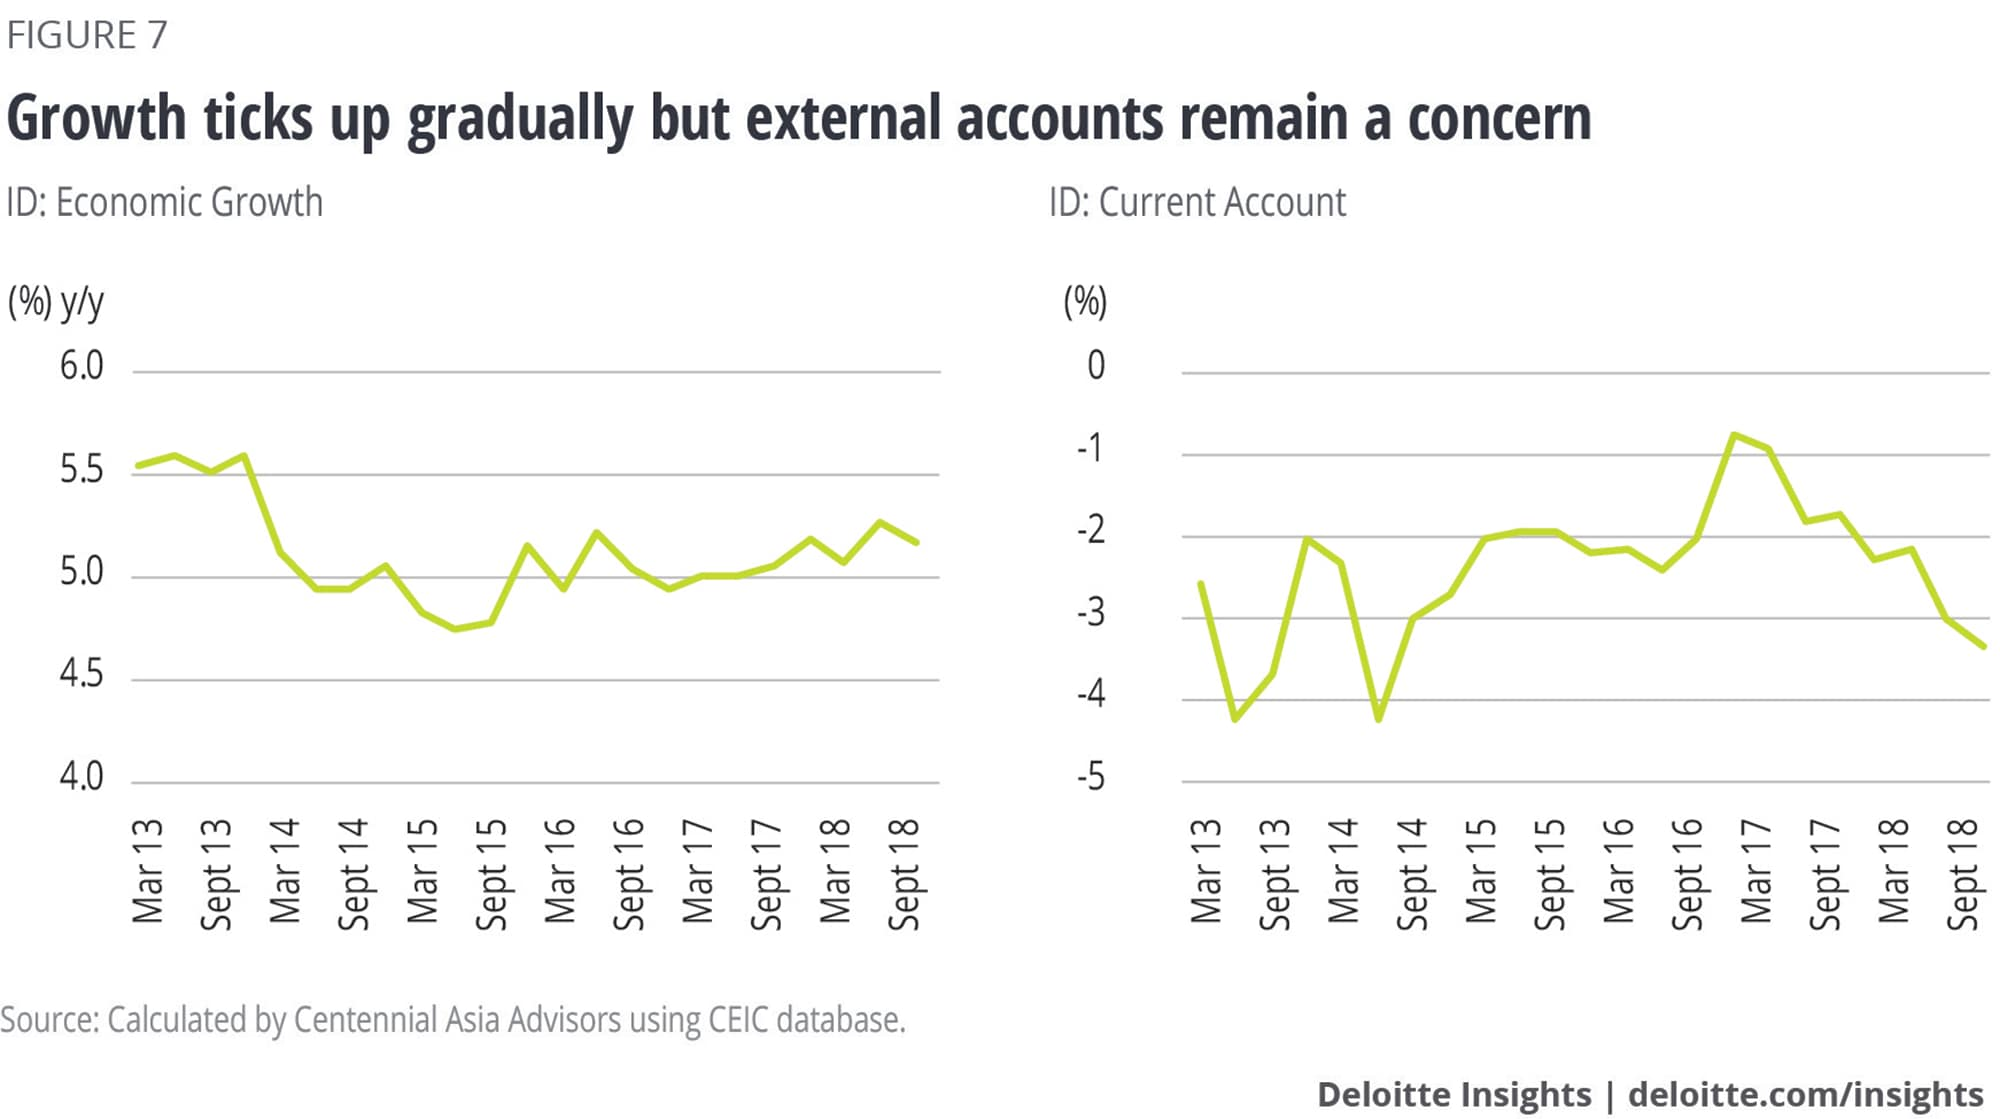 Growth ticks up gradually but external accounts remain a concern